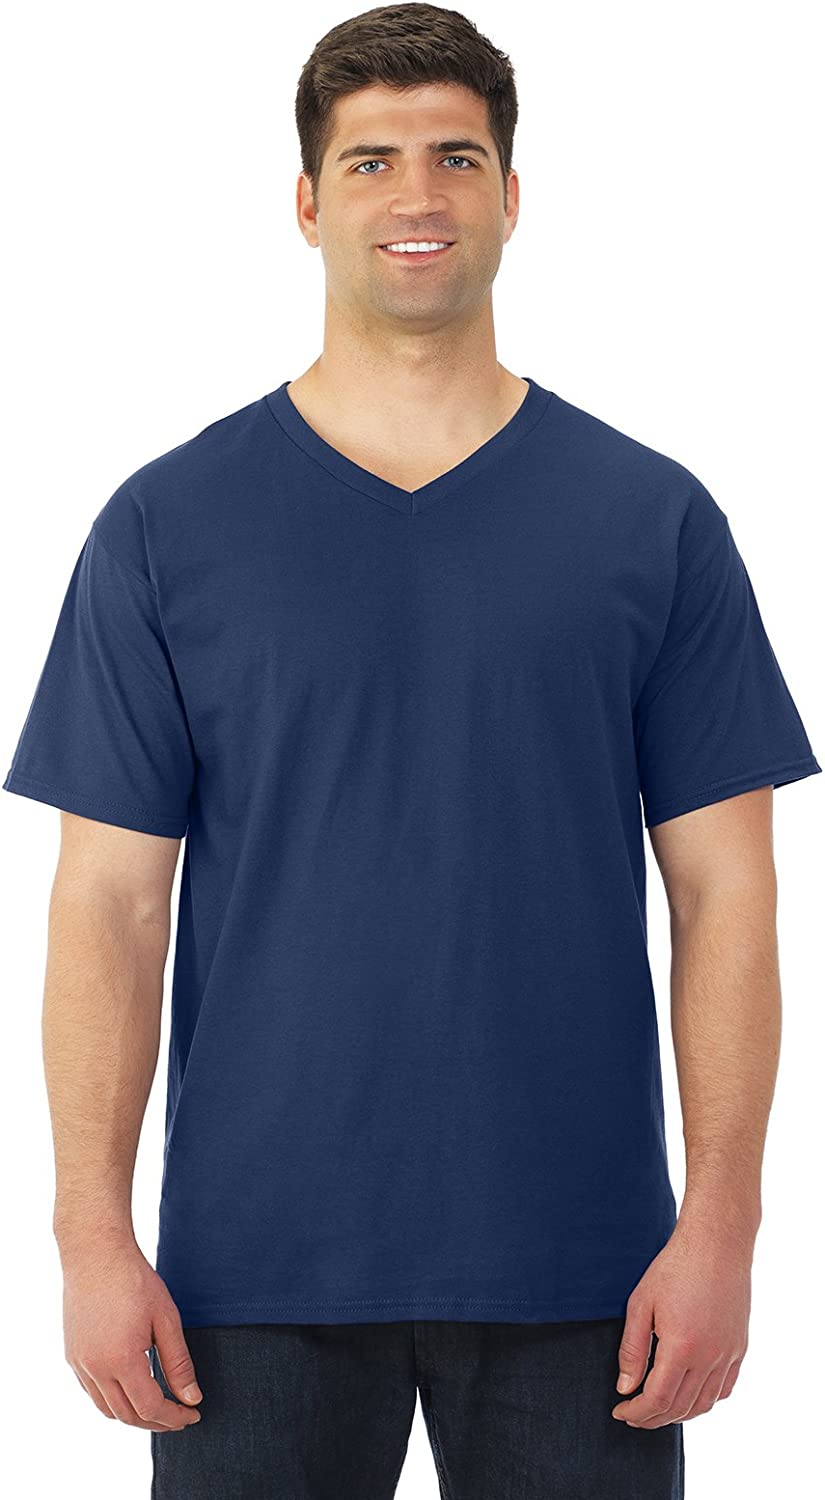 Fruit of the Loom - HD Cotton V-Neck T-Shirt - 39VR